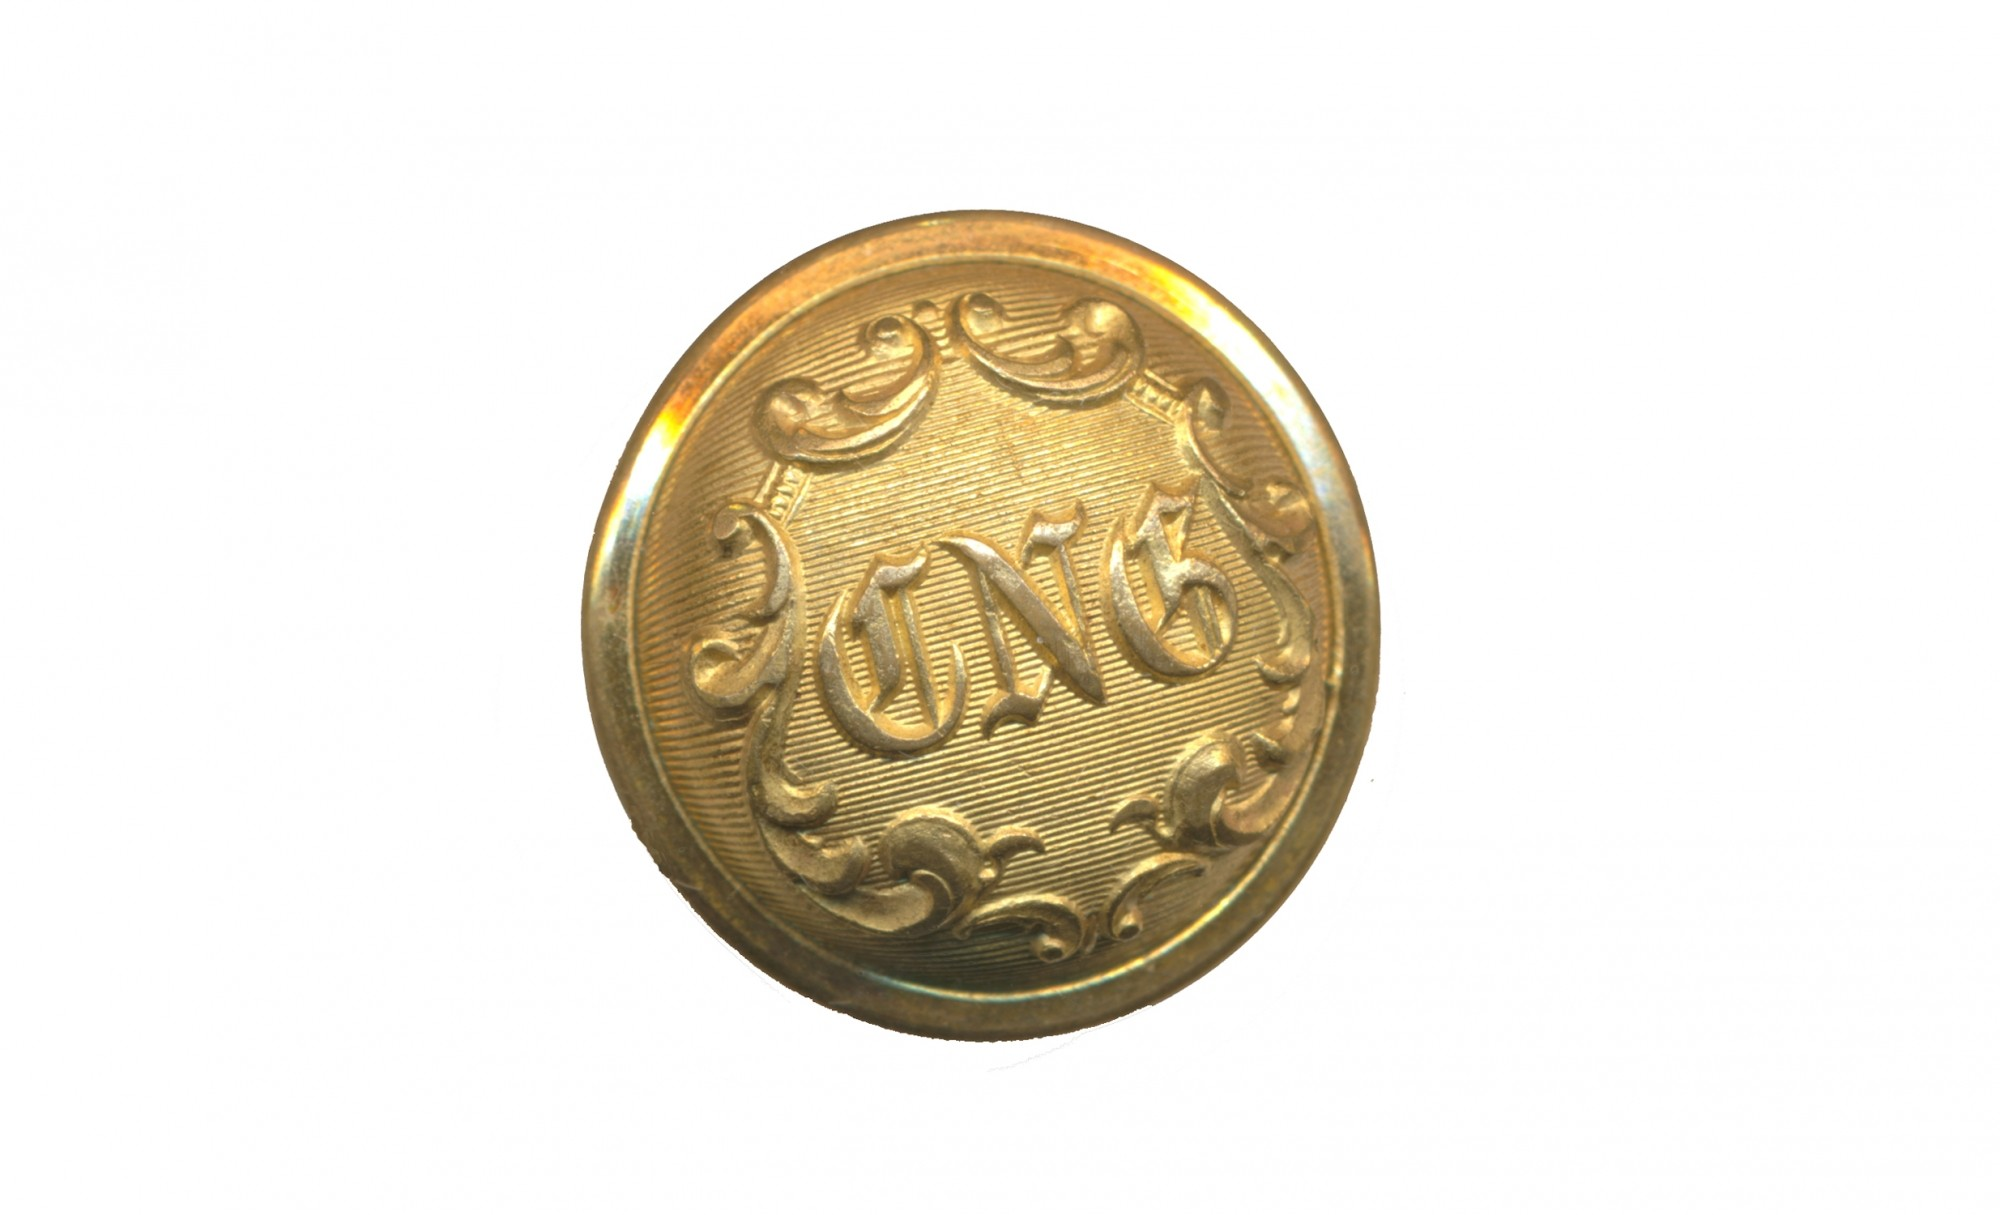 CONNECTICUT NATIONAL GUARD STAFF COAT BUTTON